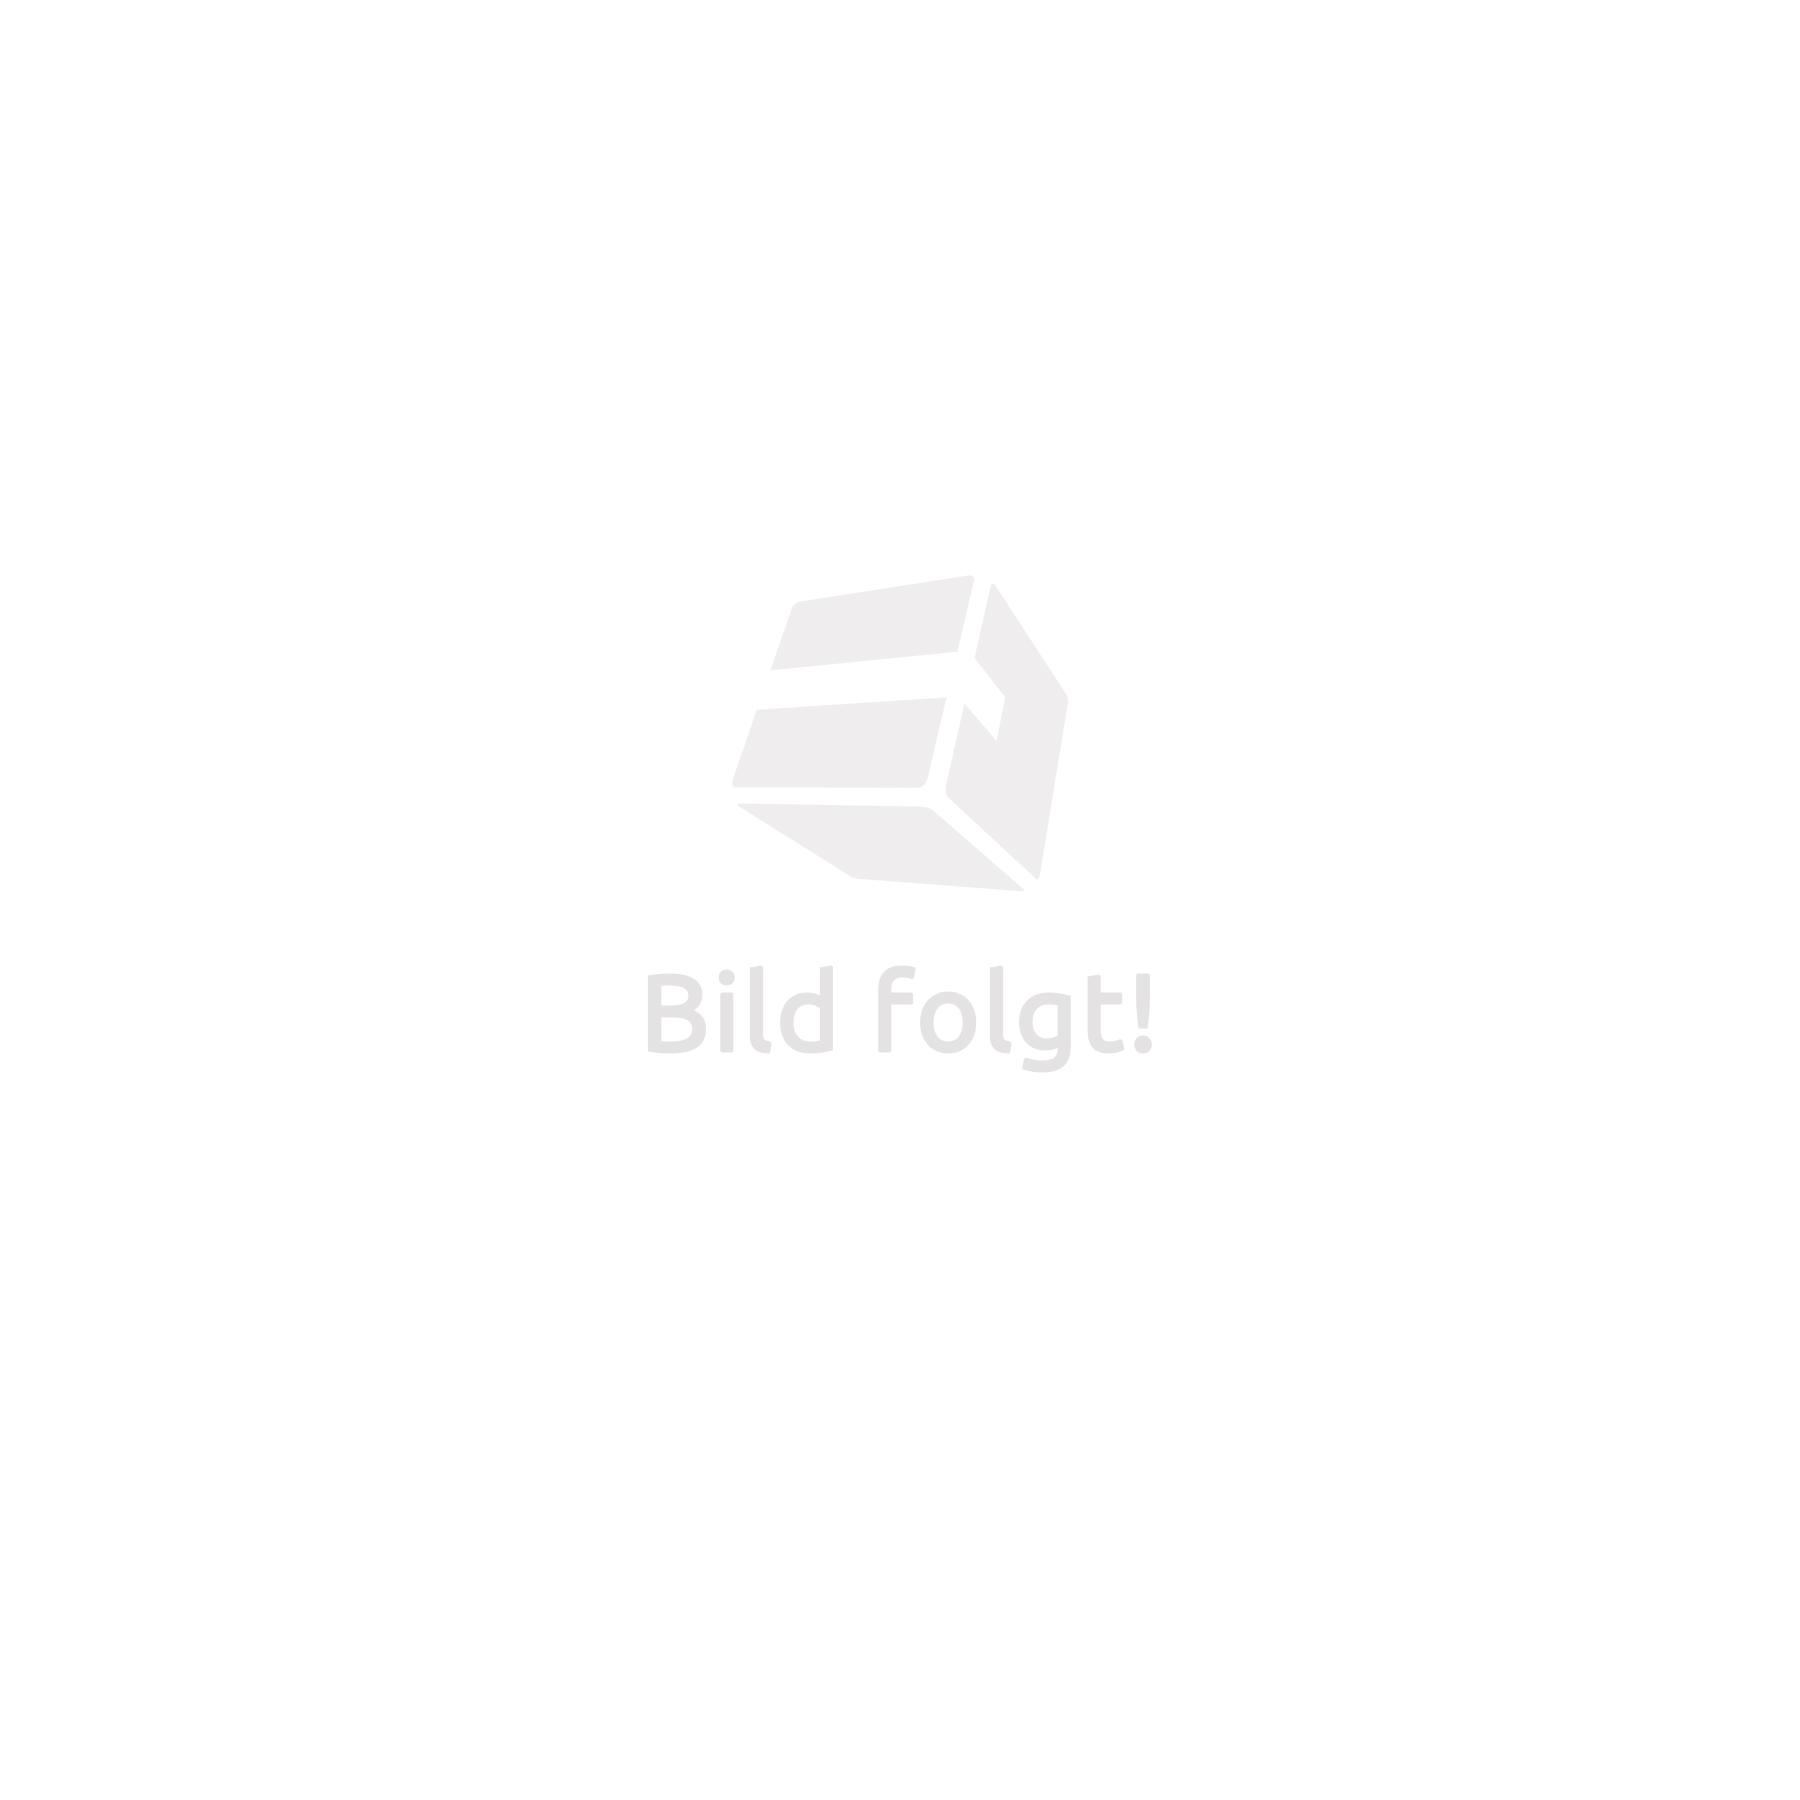 Wooden Garden Bench Eucalyptus Wood Seat With Metal Legs